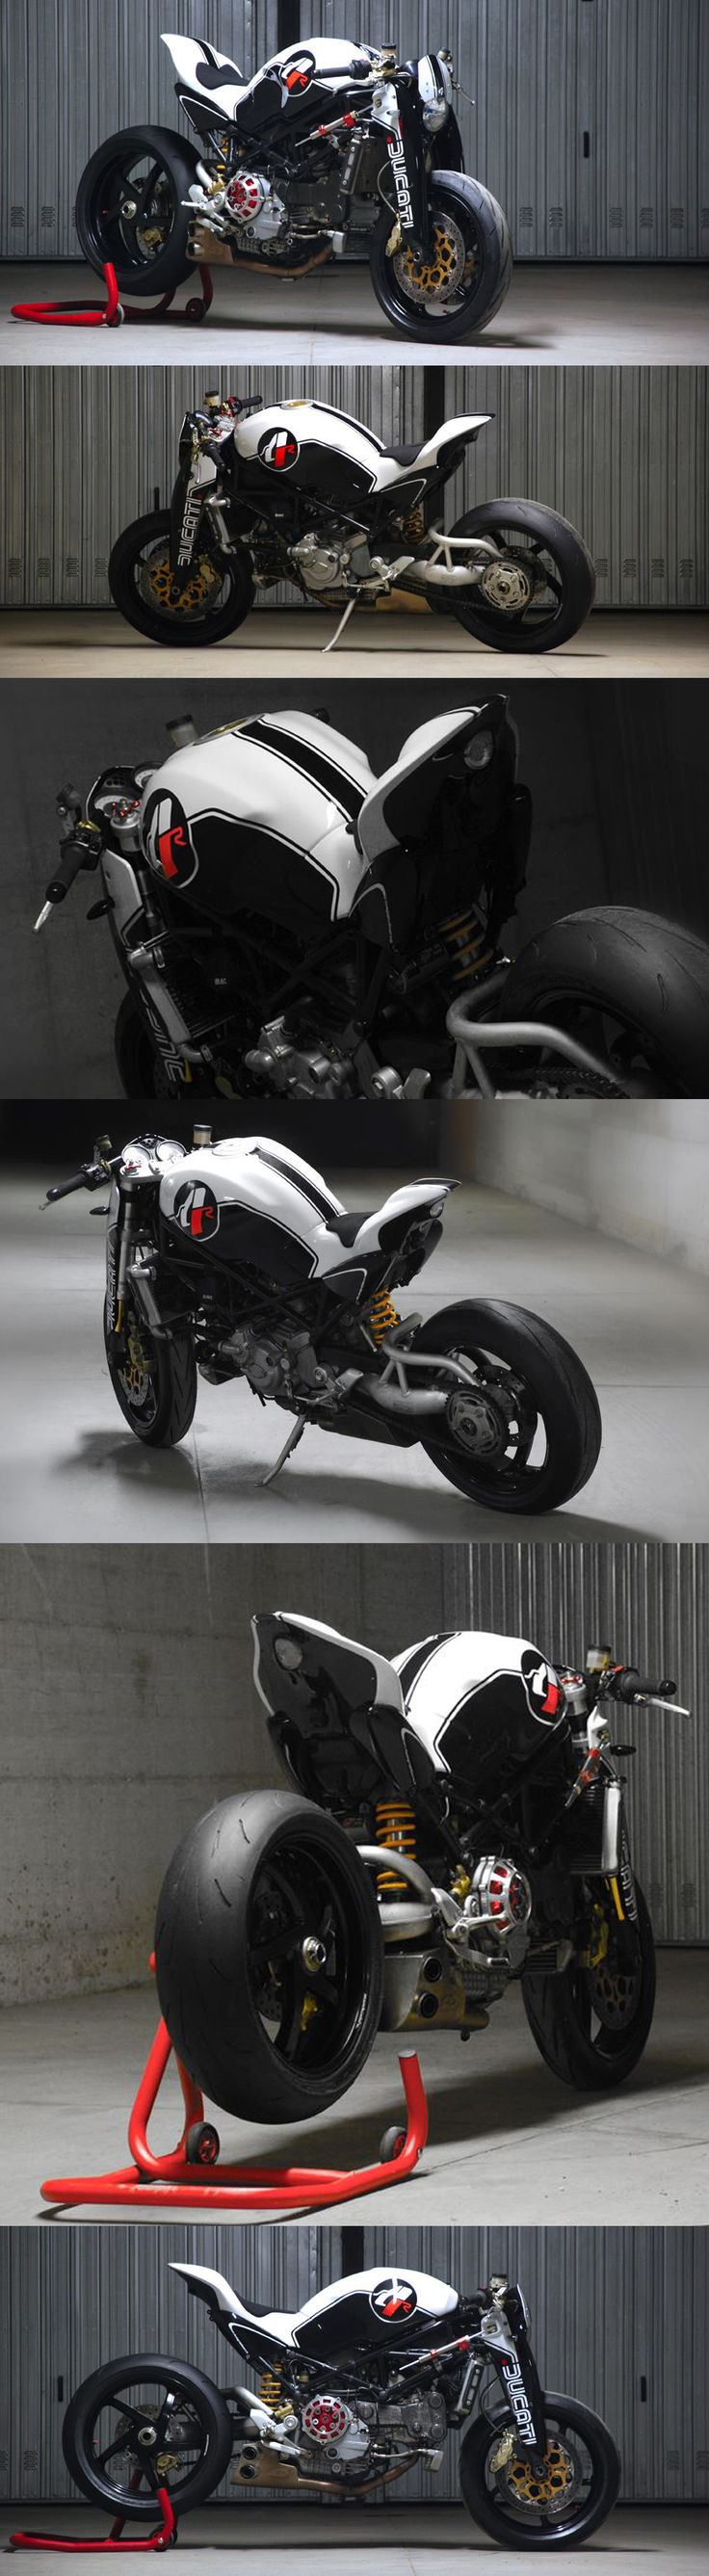 #Ducati Monster MS4R by Paolo Tesio #Ducati